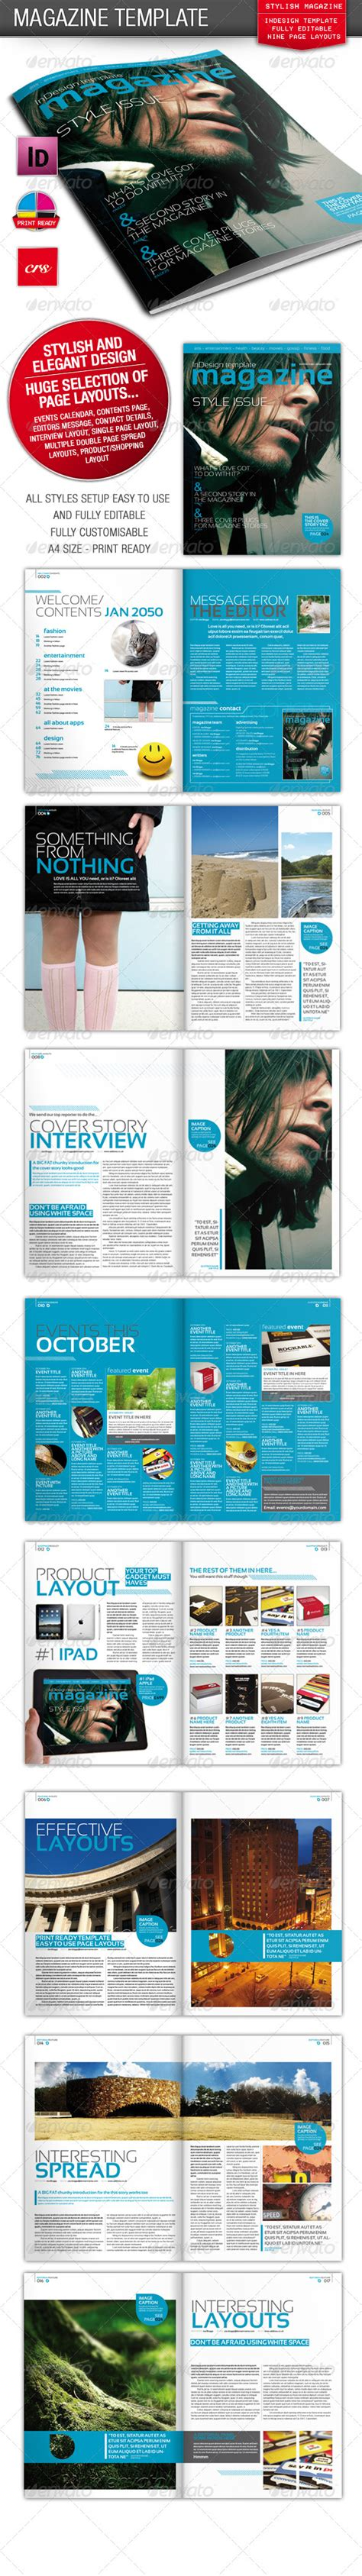 stylish indesign magazine template graphicriver